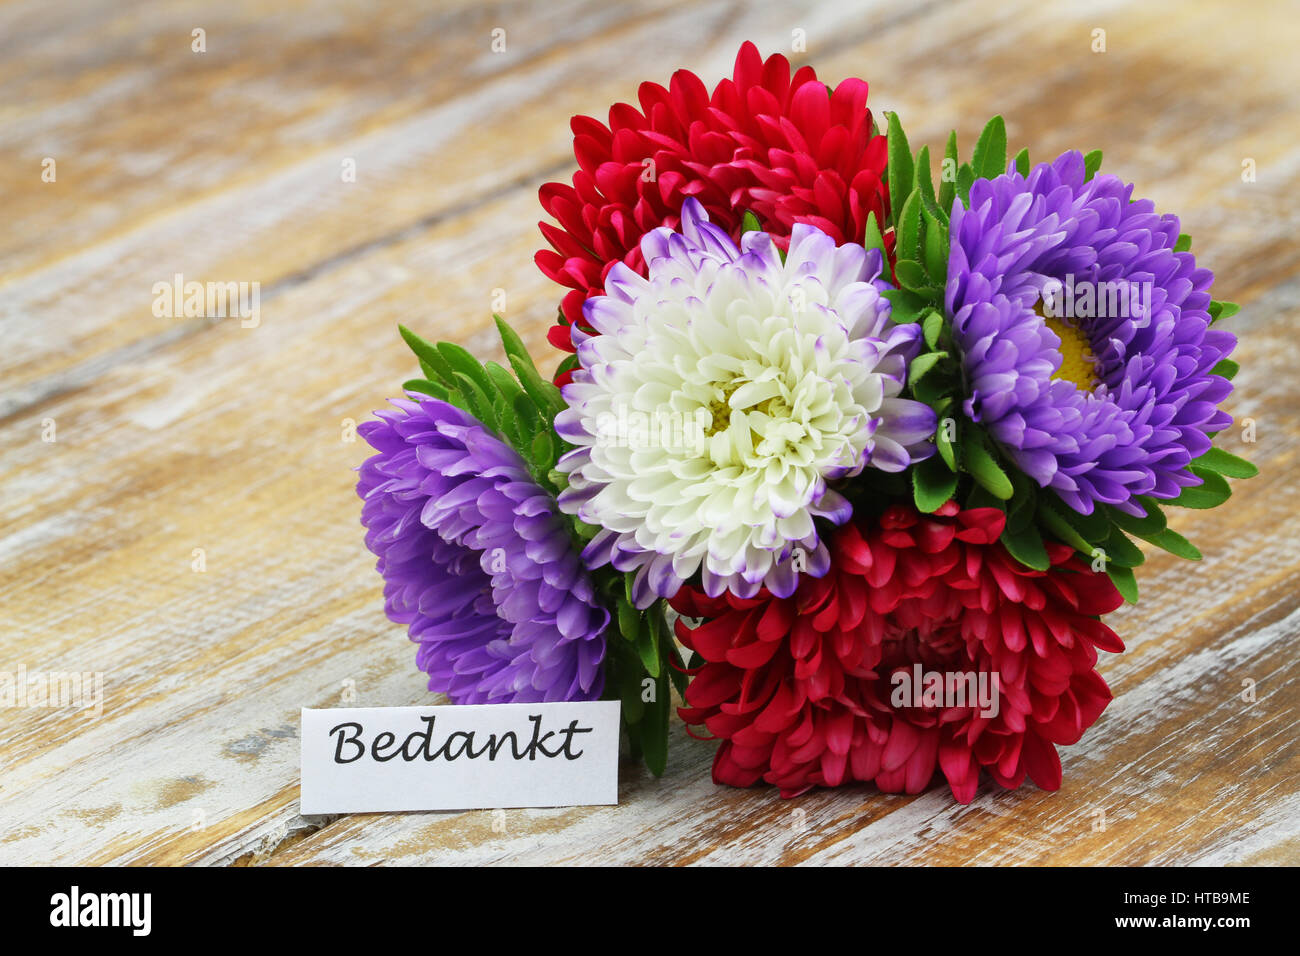 Colorful Aster Bouquet Stock Photos & Colorful Aster Bouquet Stock ...